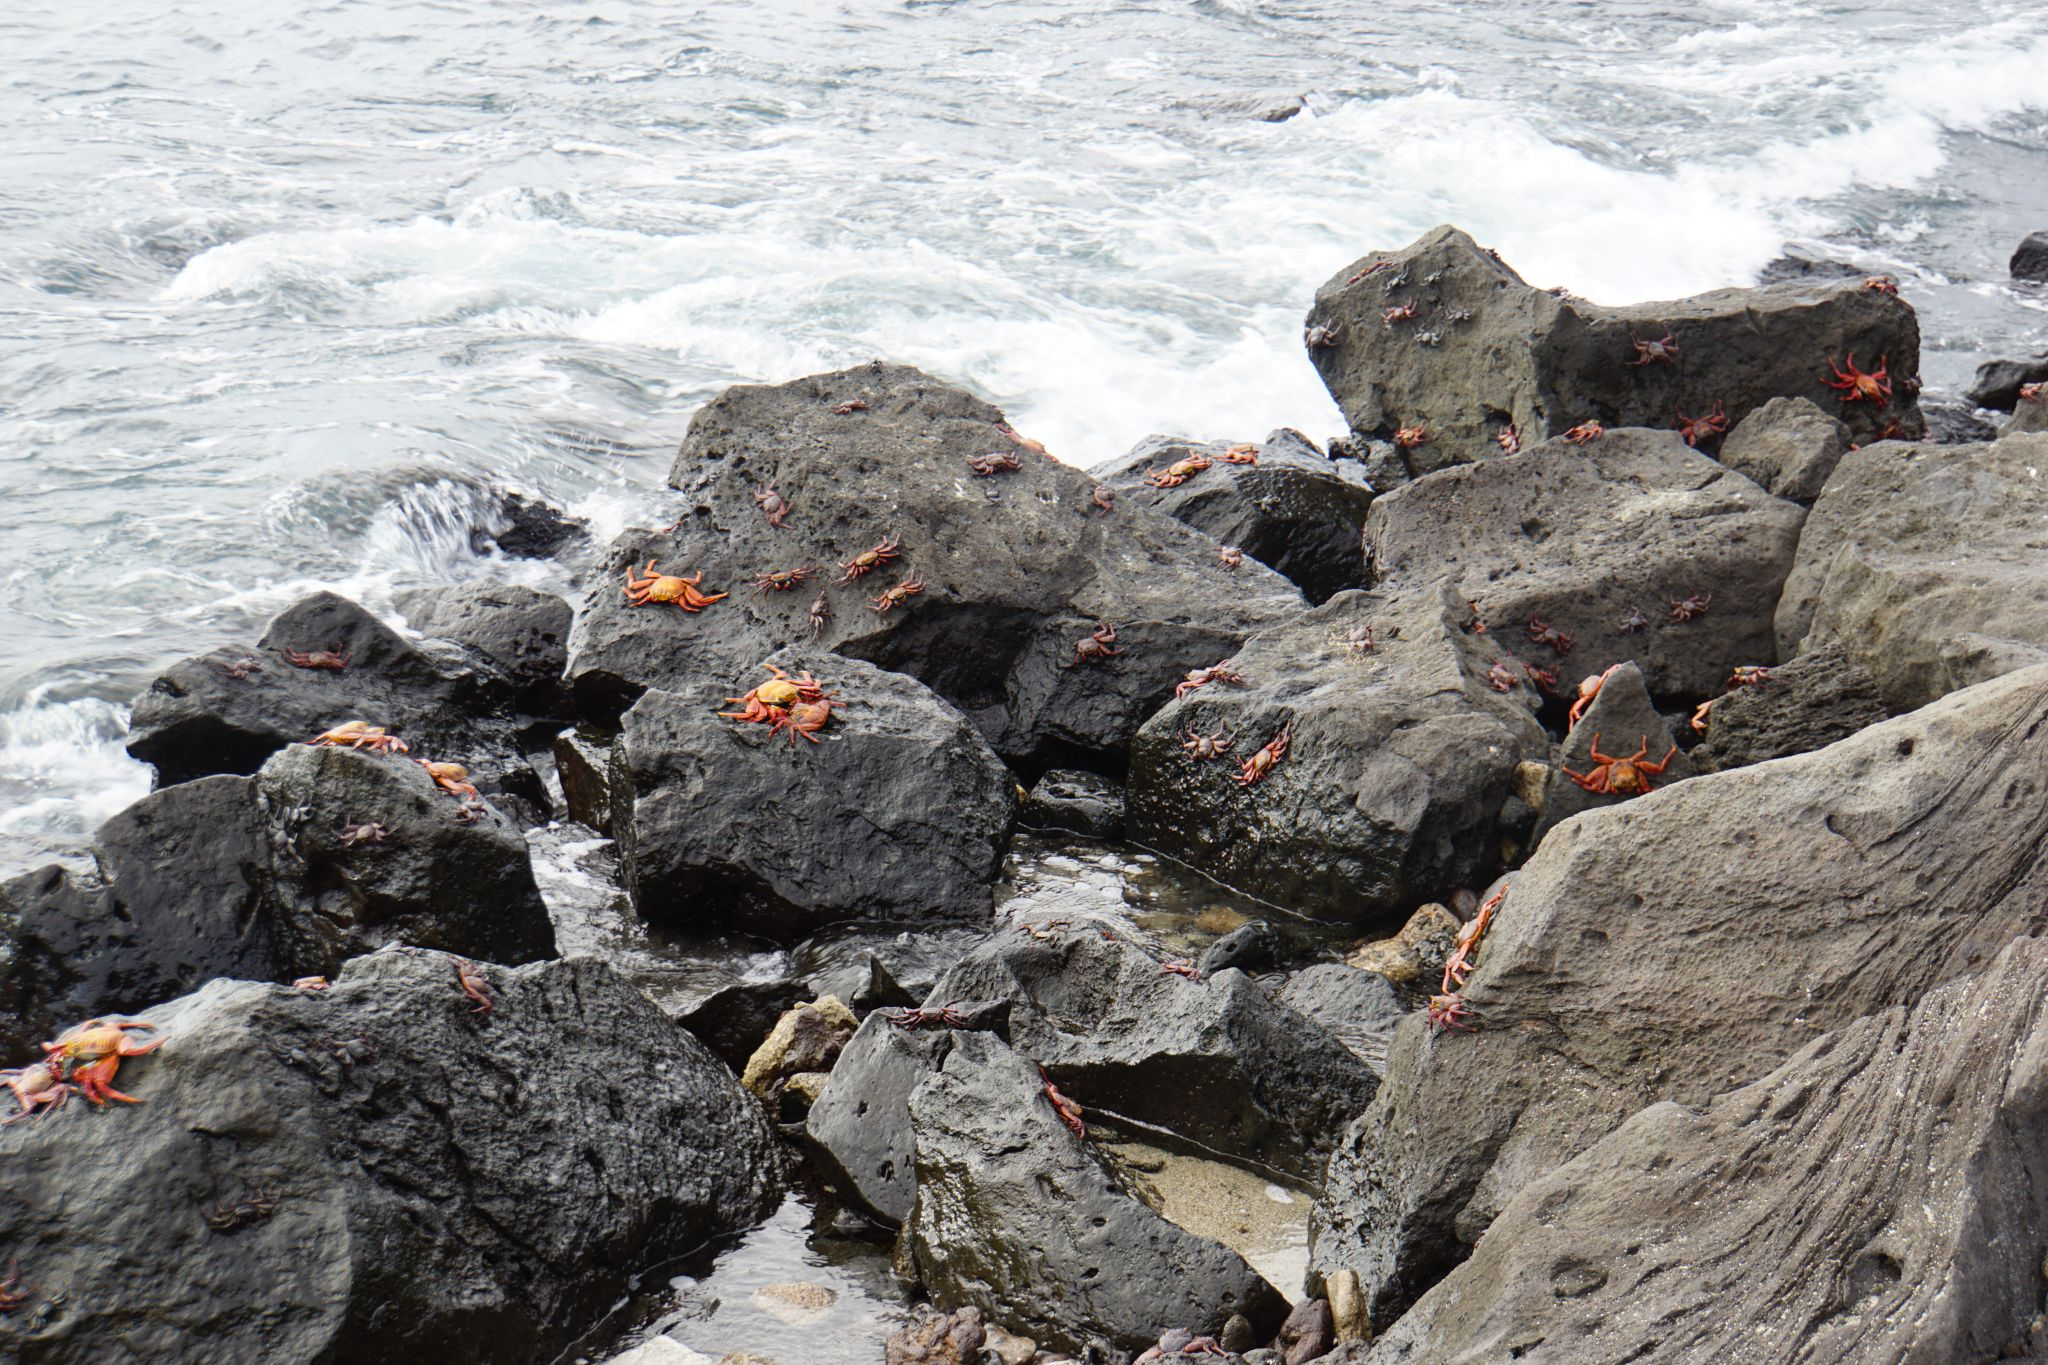 Lots of Sally lightfoot crabs in the Galápagos